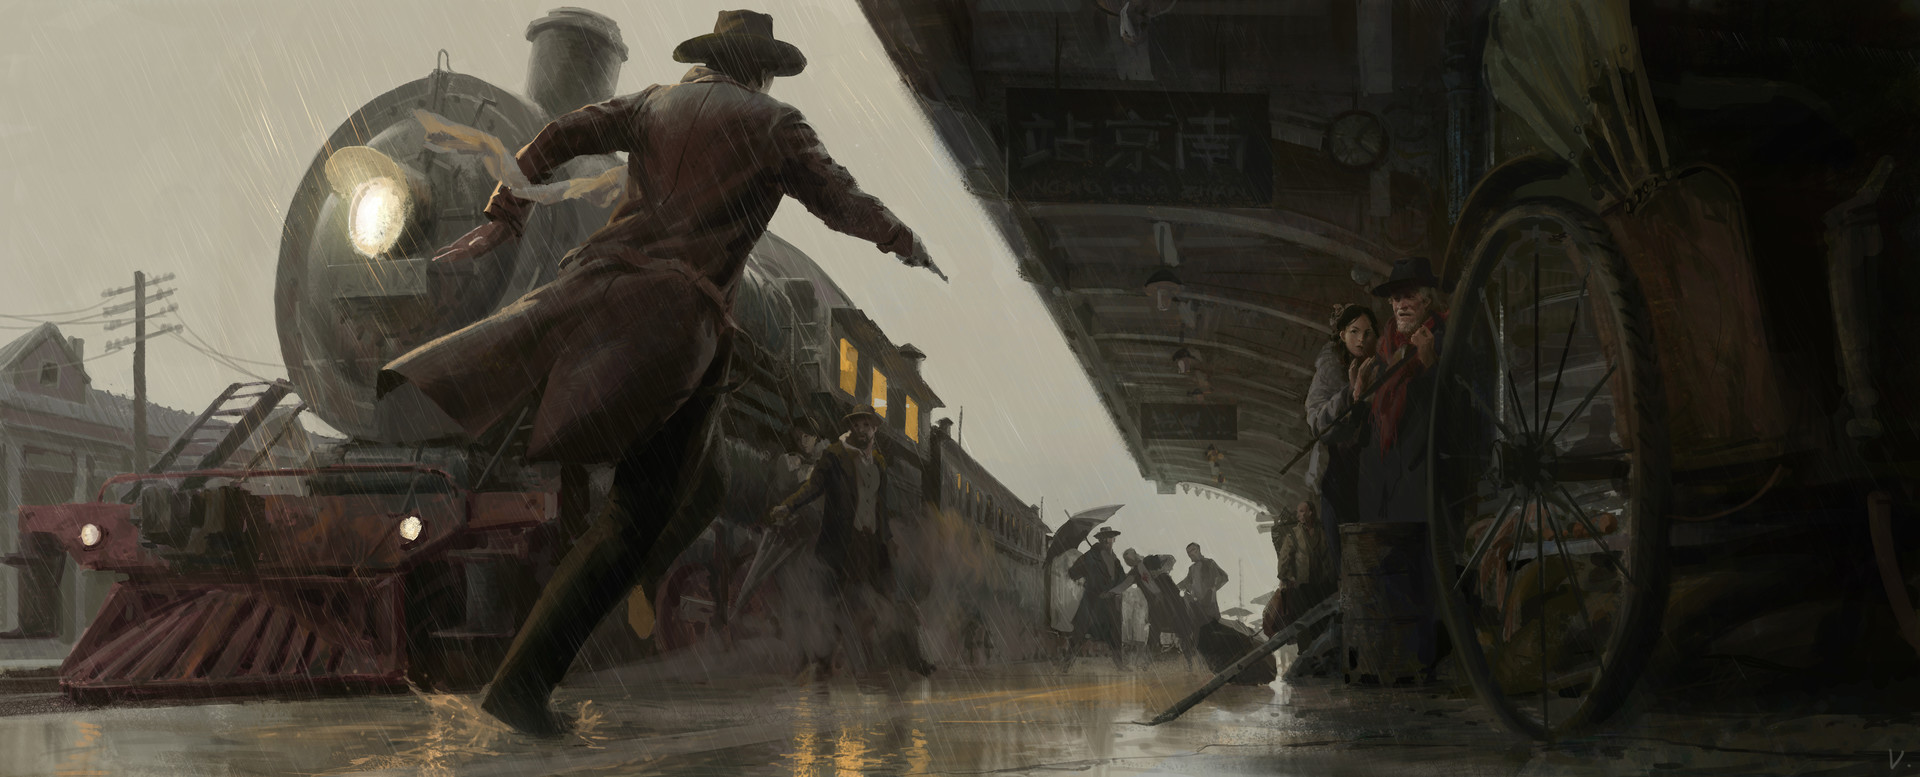 Victor Cloux Digital Painting Illustration Western Killing Train